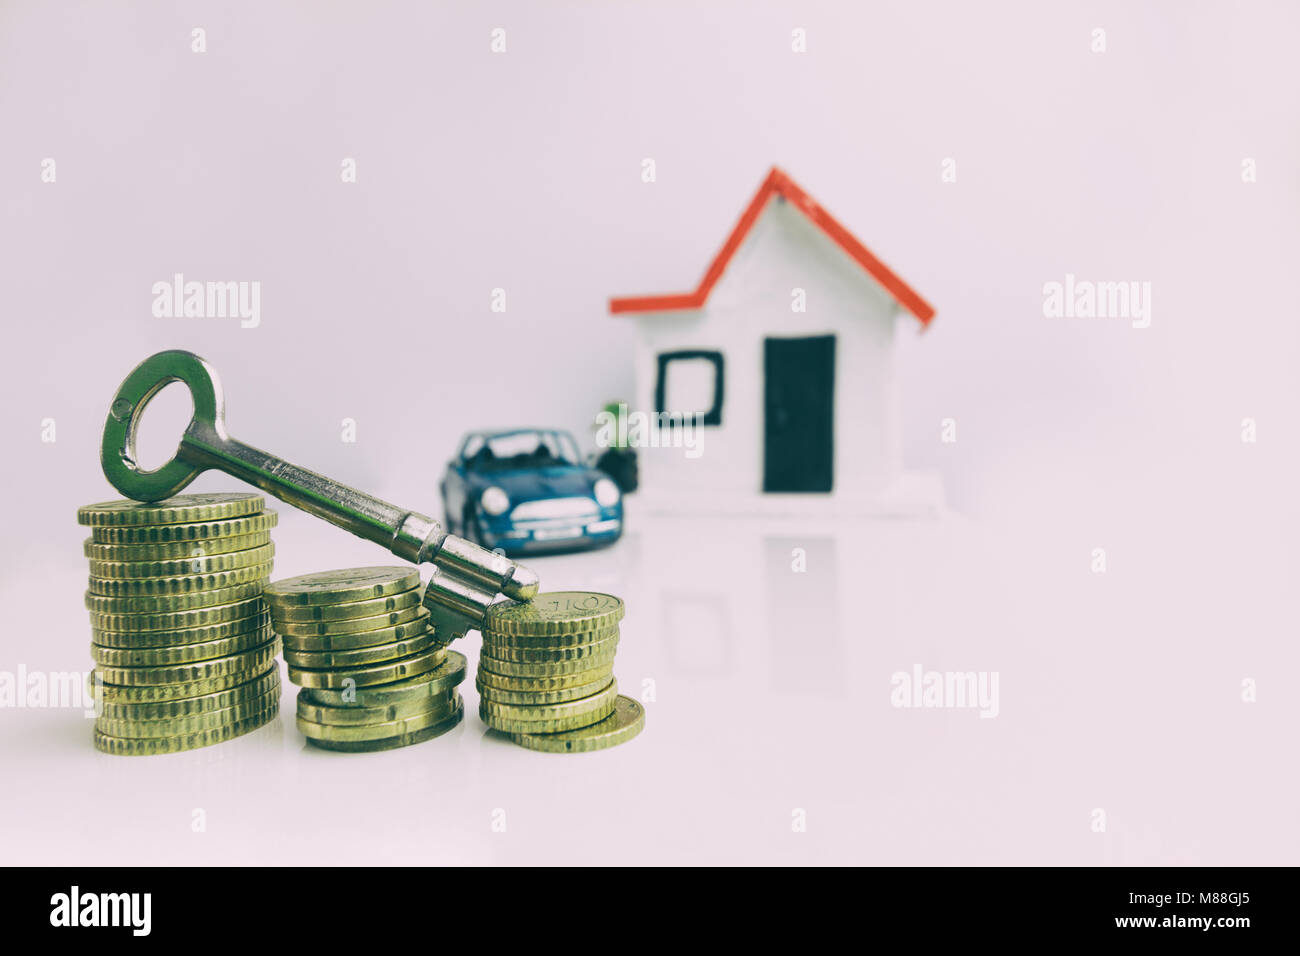 Key on top of a stack of coins with a blurred house and car on the background: real estate, property investment, - Stock Image